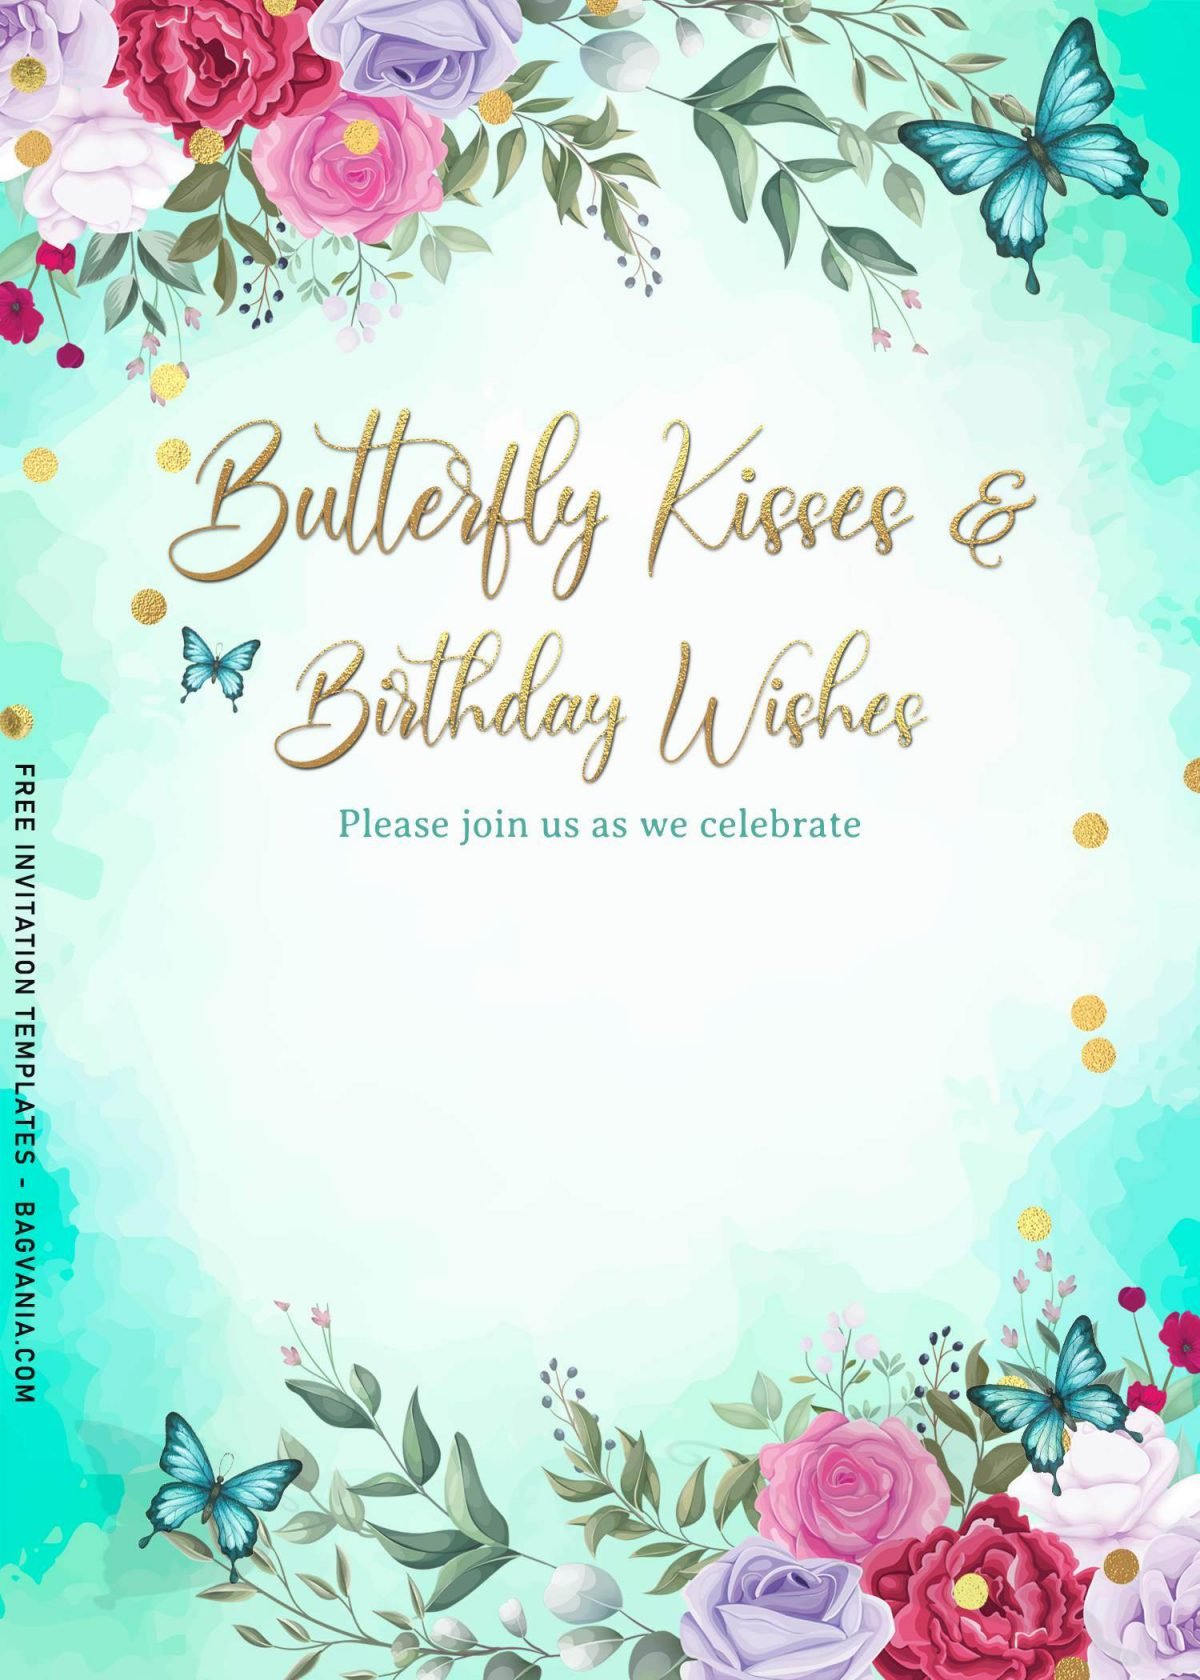 7+ Magical Watercolor Butterfly Birthday Invitation Templates and has butterfly kisses and birthday wishes text